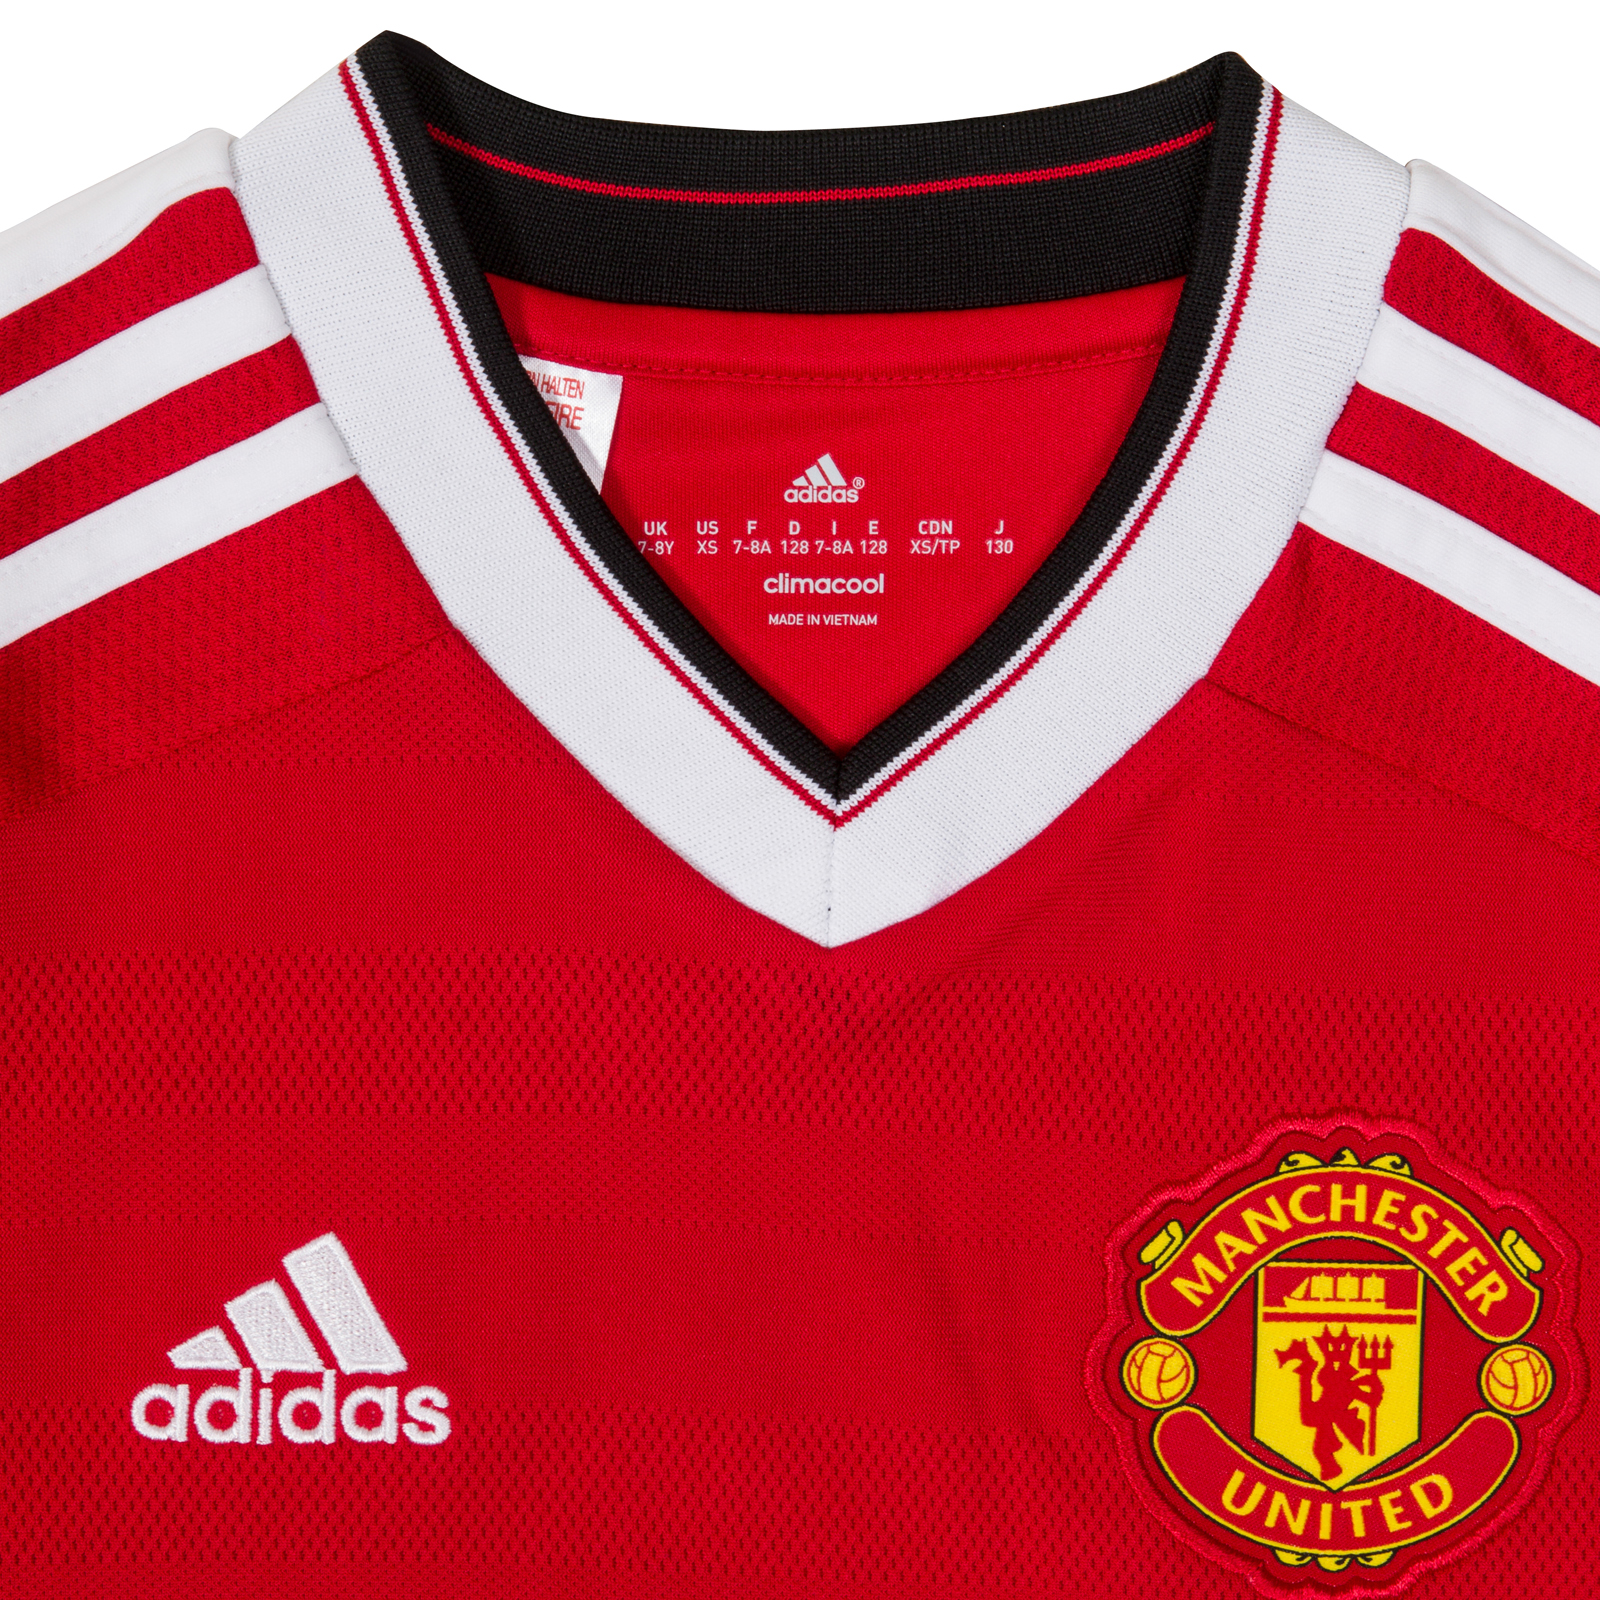 Manchester-United-FC-Official-Gift-Boys-Adidas-Home-Kit-Long-Sleeve-Shirt thumbnail 6